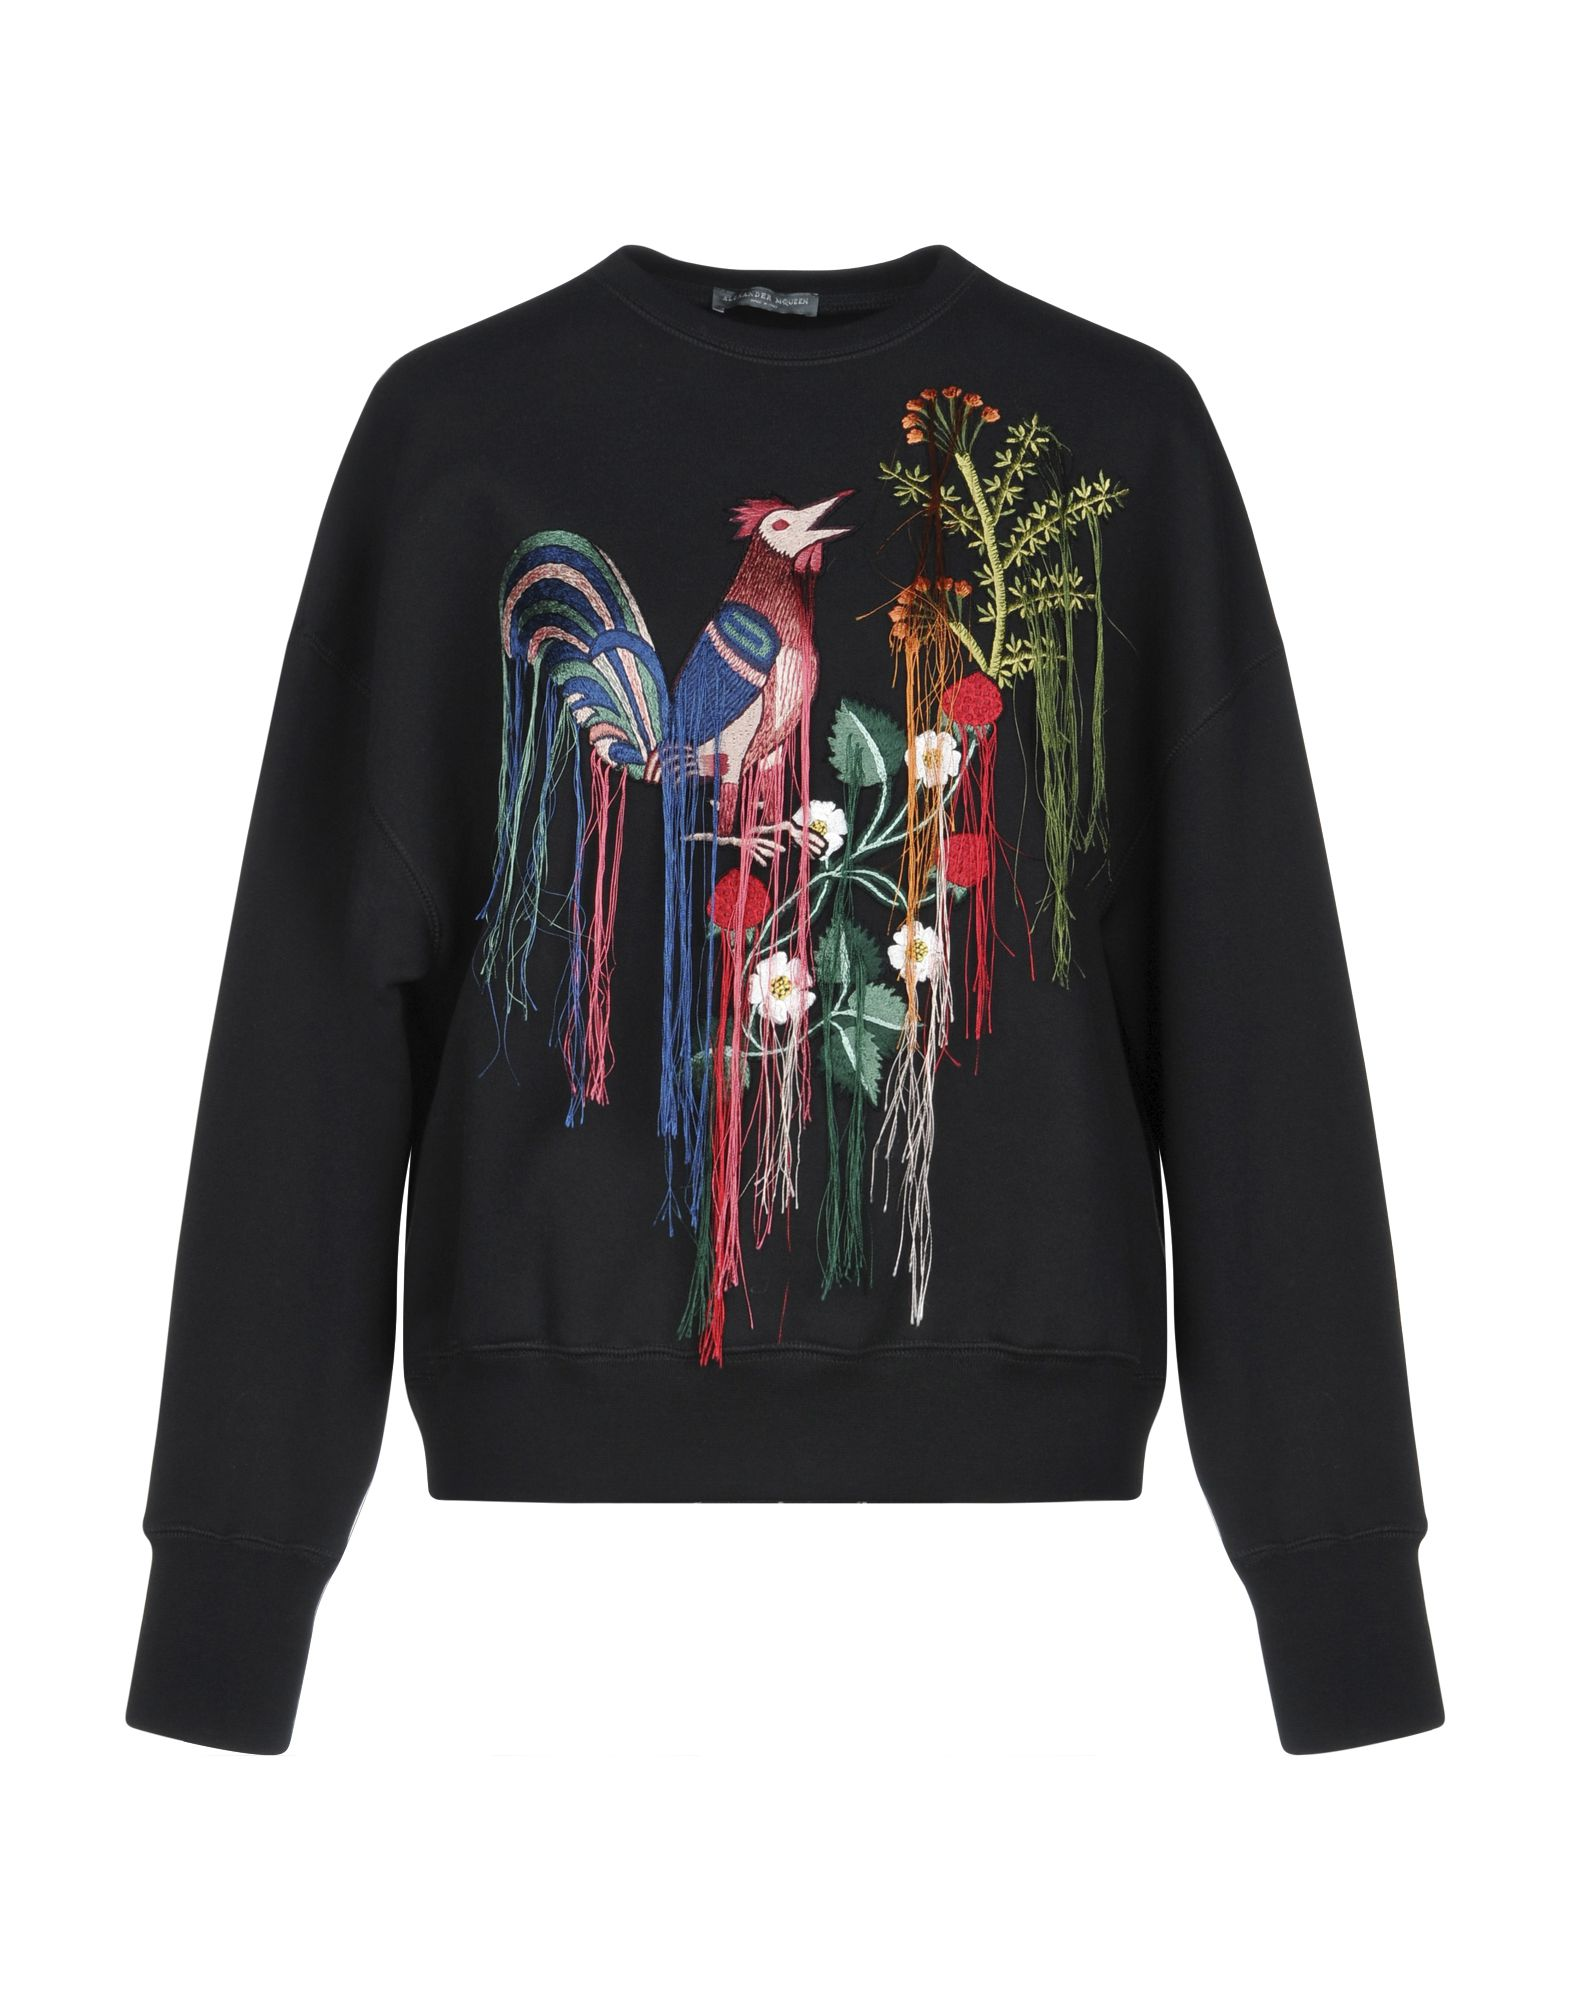 ALEXANDER MCQUEEN Sweatshirts. embroidered detailing, solid color, round collar, long sleeves, no pockets. 100% Cotton